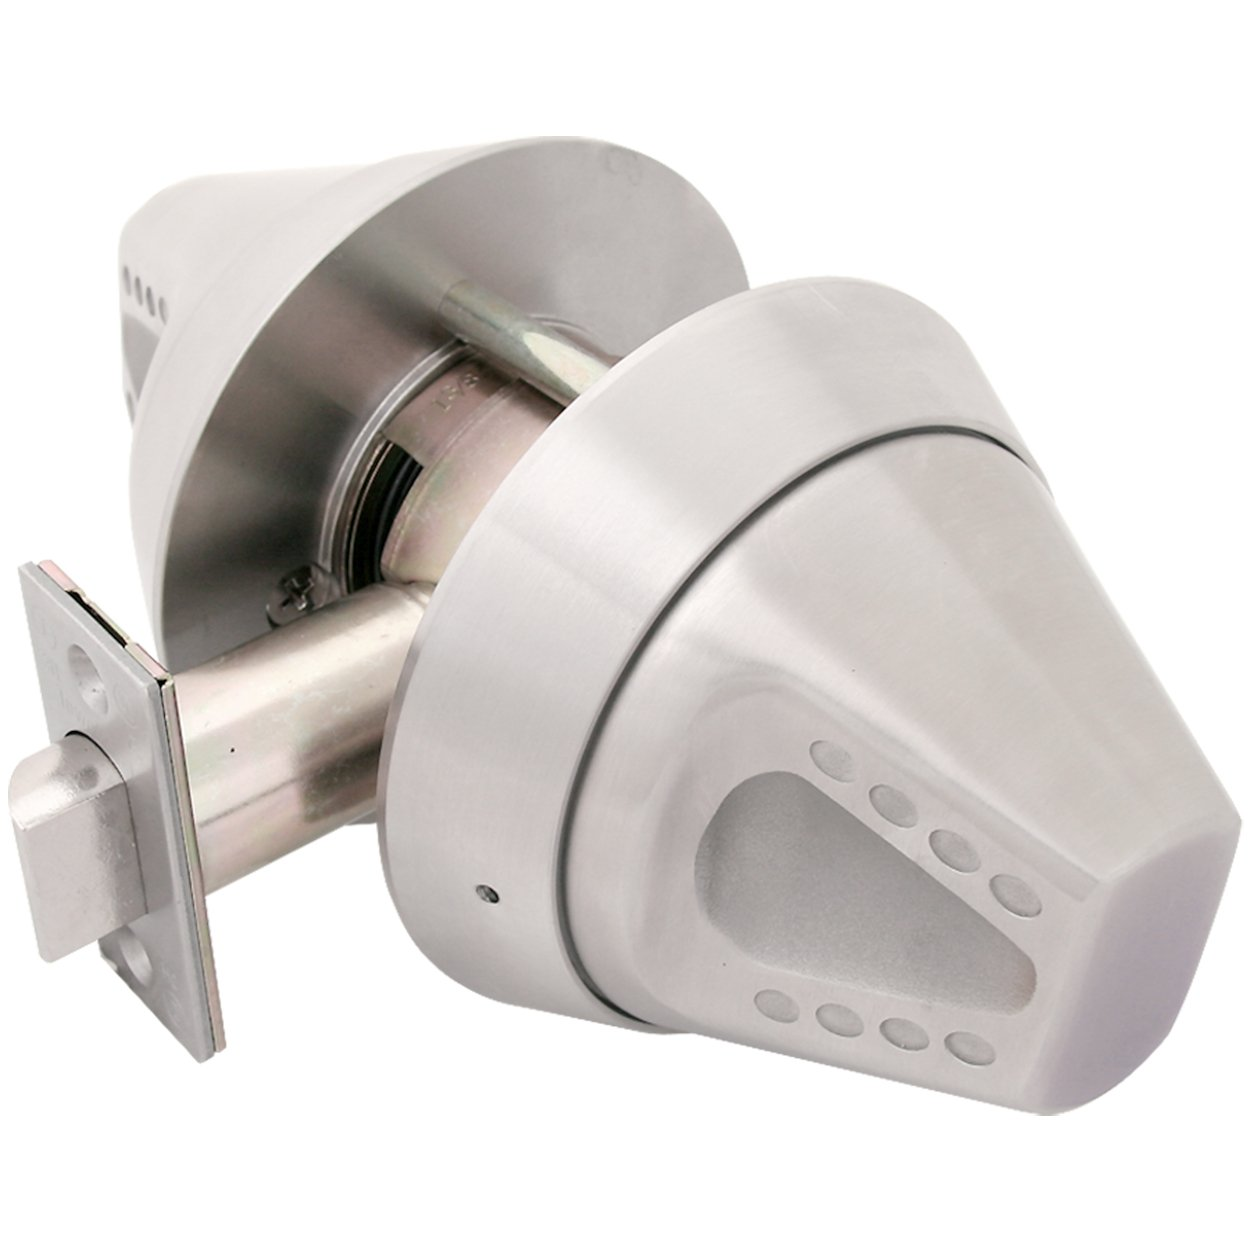 TownSteel CRX-K-75 Cylindrical Lock with Ligature Resistant Knob Trim, Grade 1, Privacy Function, Non-Handed, Satin Stainless Steel